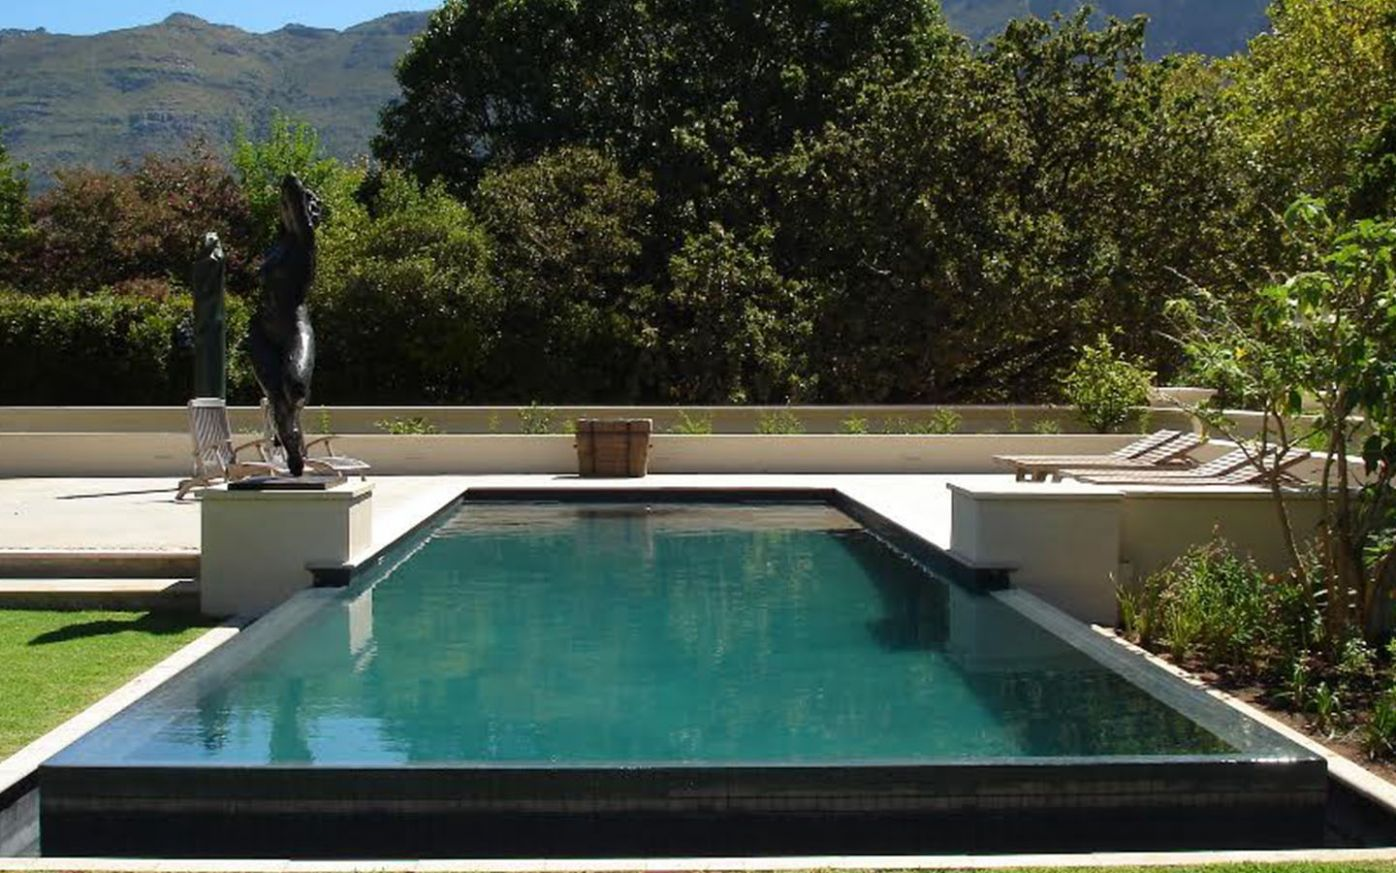 Pools & Renovations | macD Fireplaces and Luxury Pools - pool ideas cape town